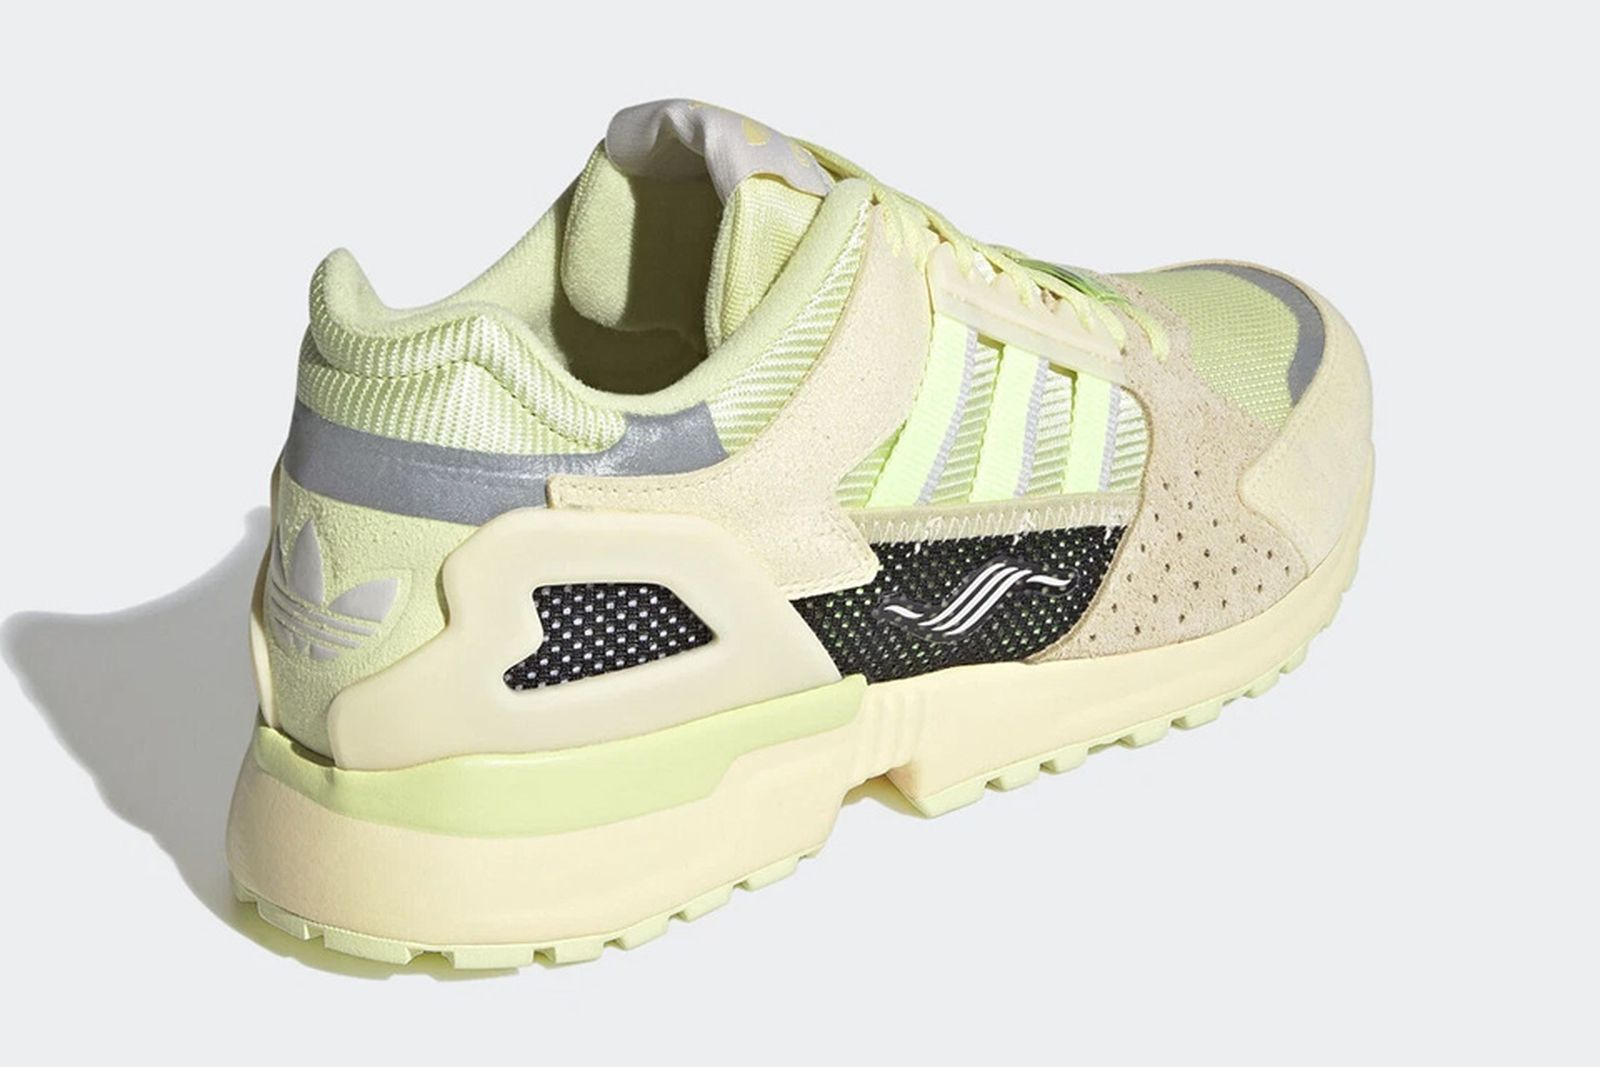 adidas-zx-10000-c-yellow-tint-release-date-price-01